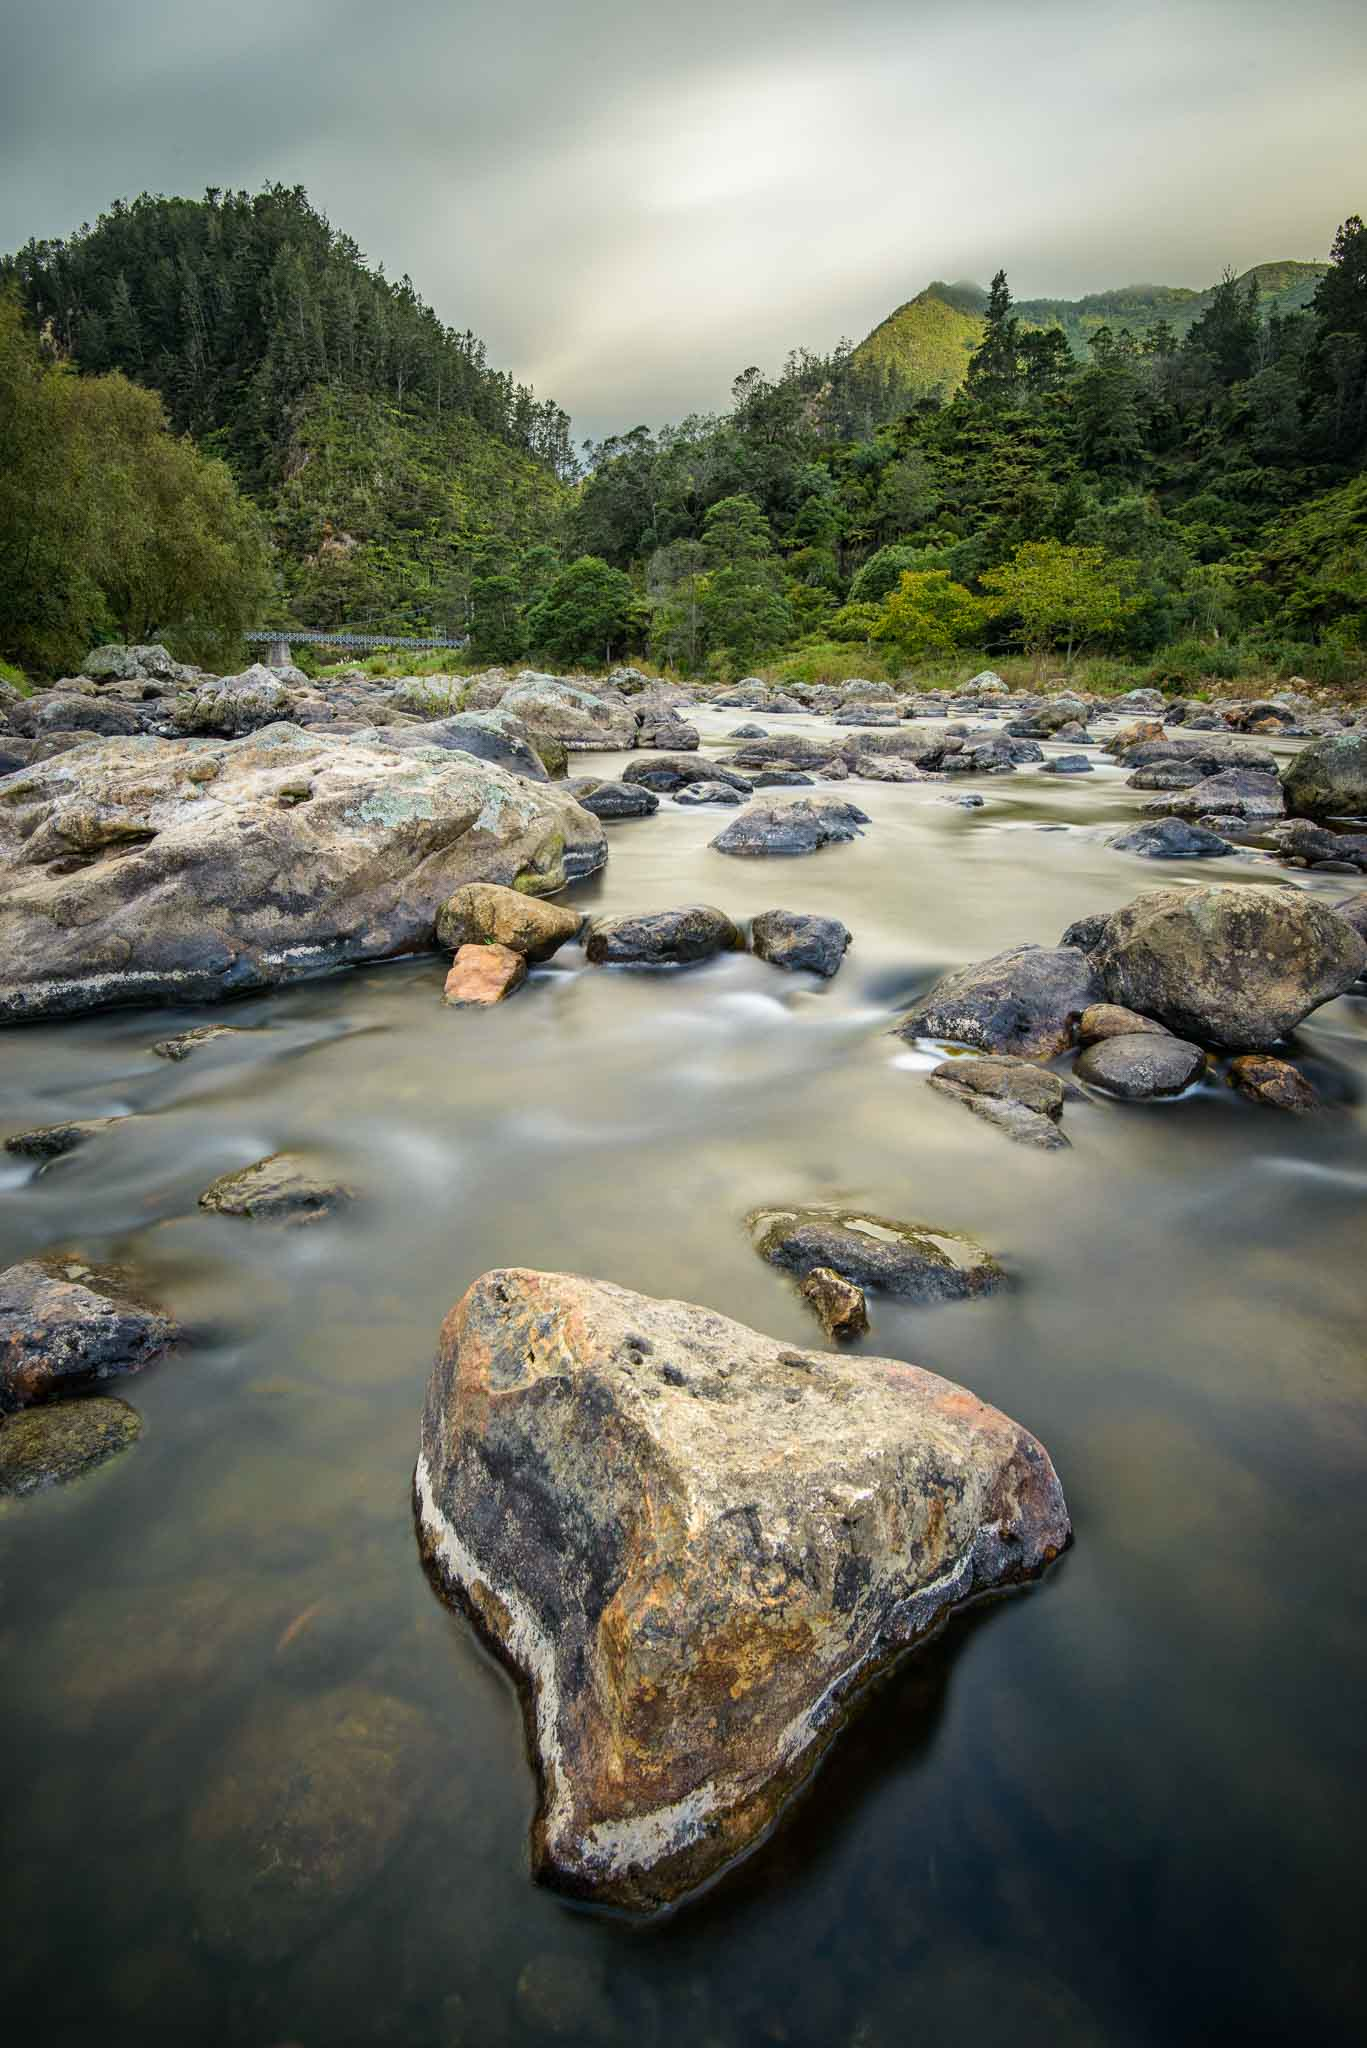 Landscape photo Ohinemuri River Karangahake Gorge coromandel New Zealand.